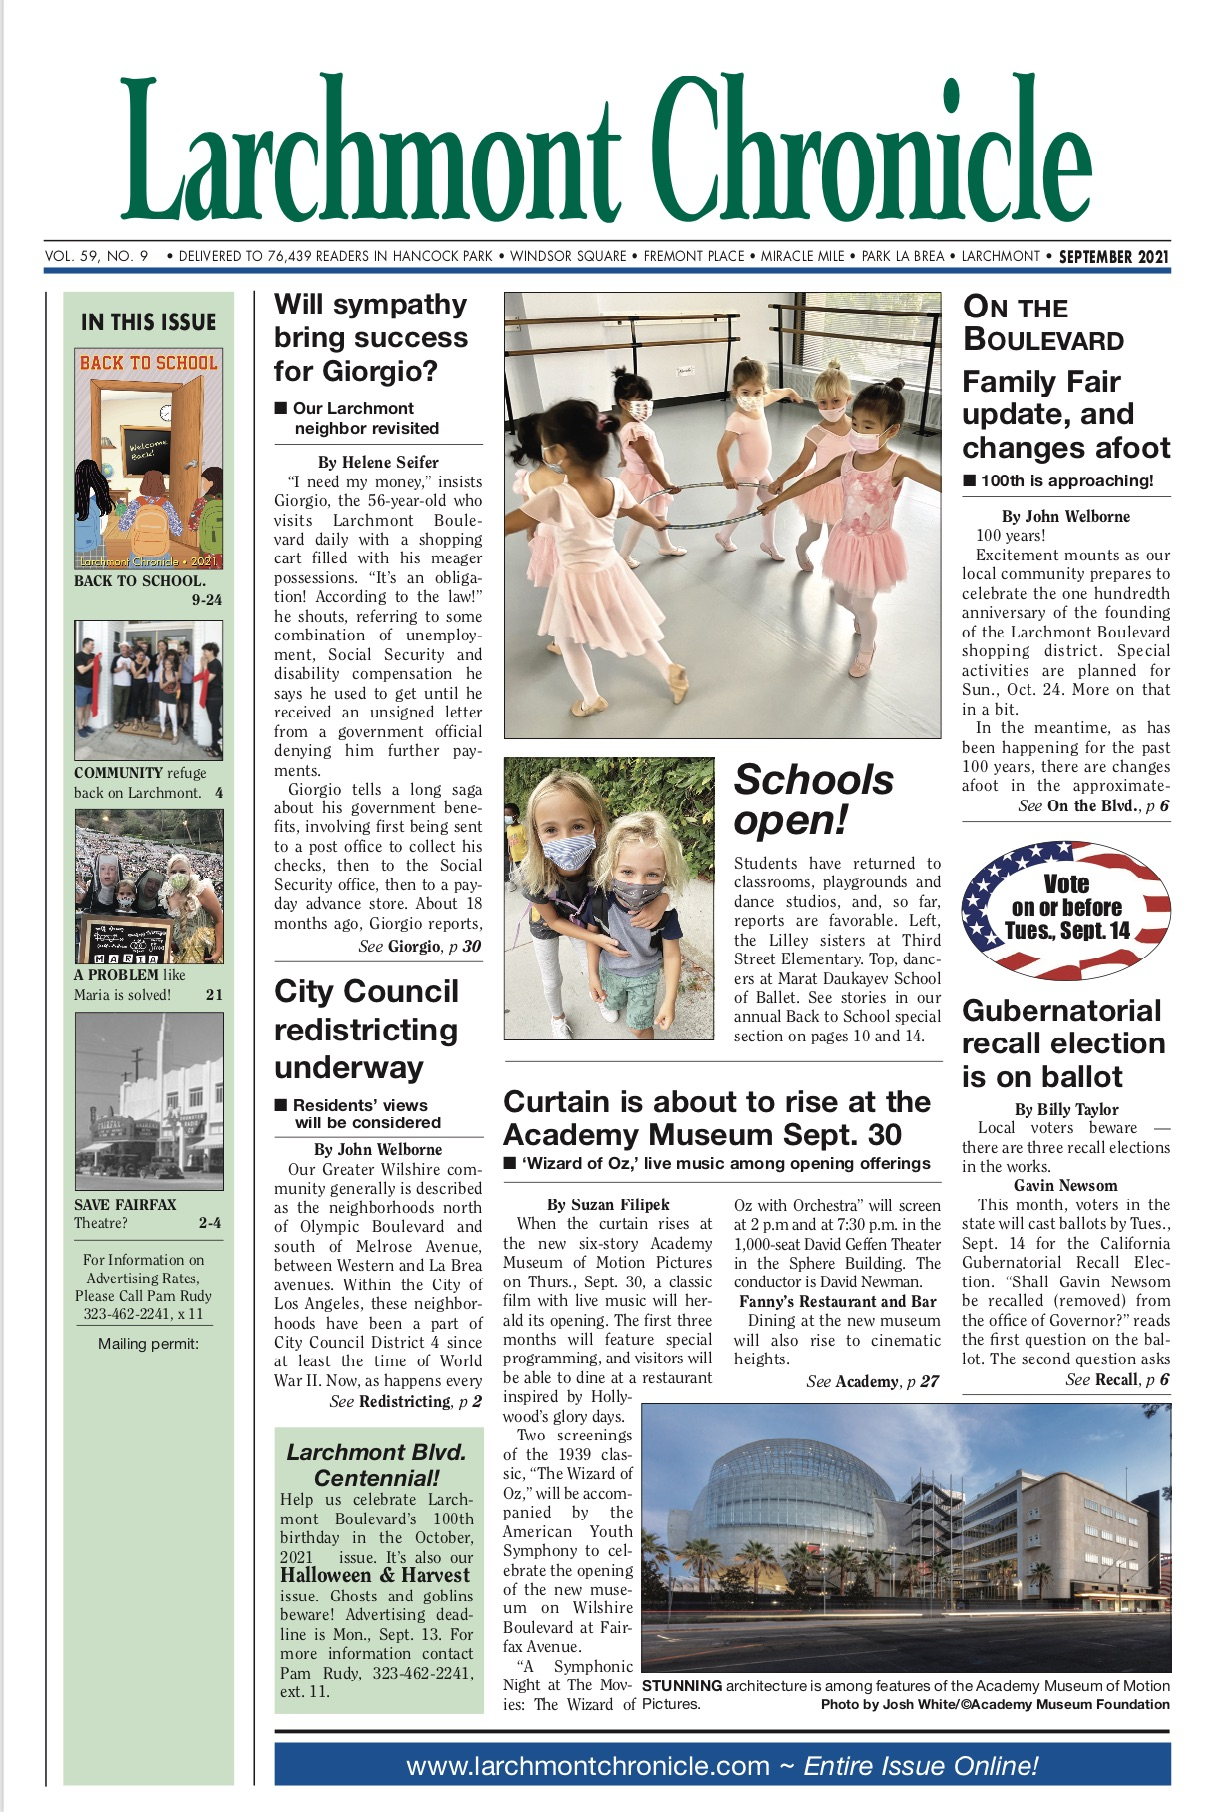 Larchmont Chronicle September 2021 full issue